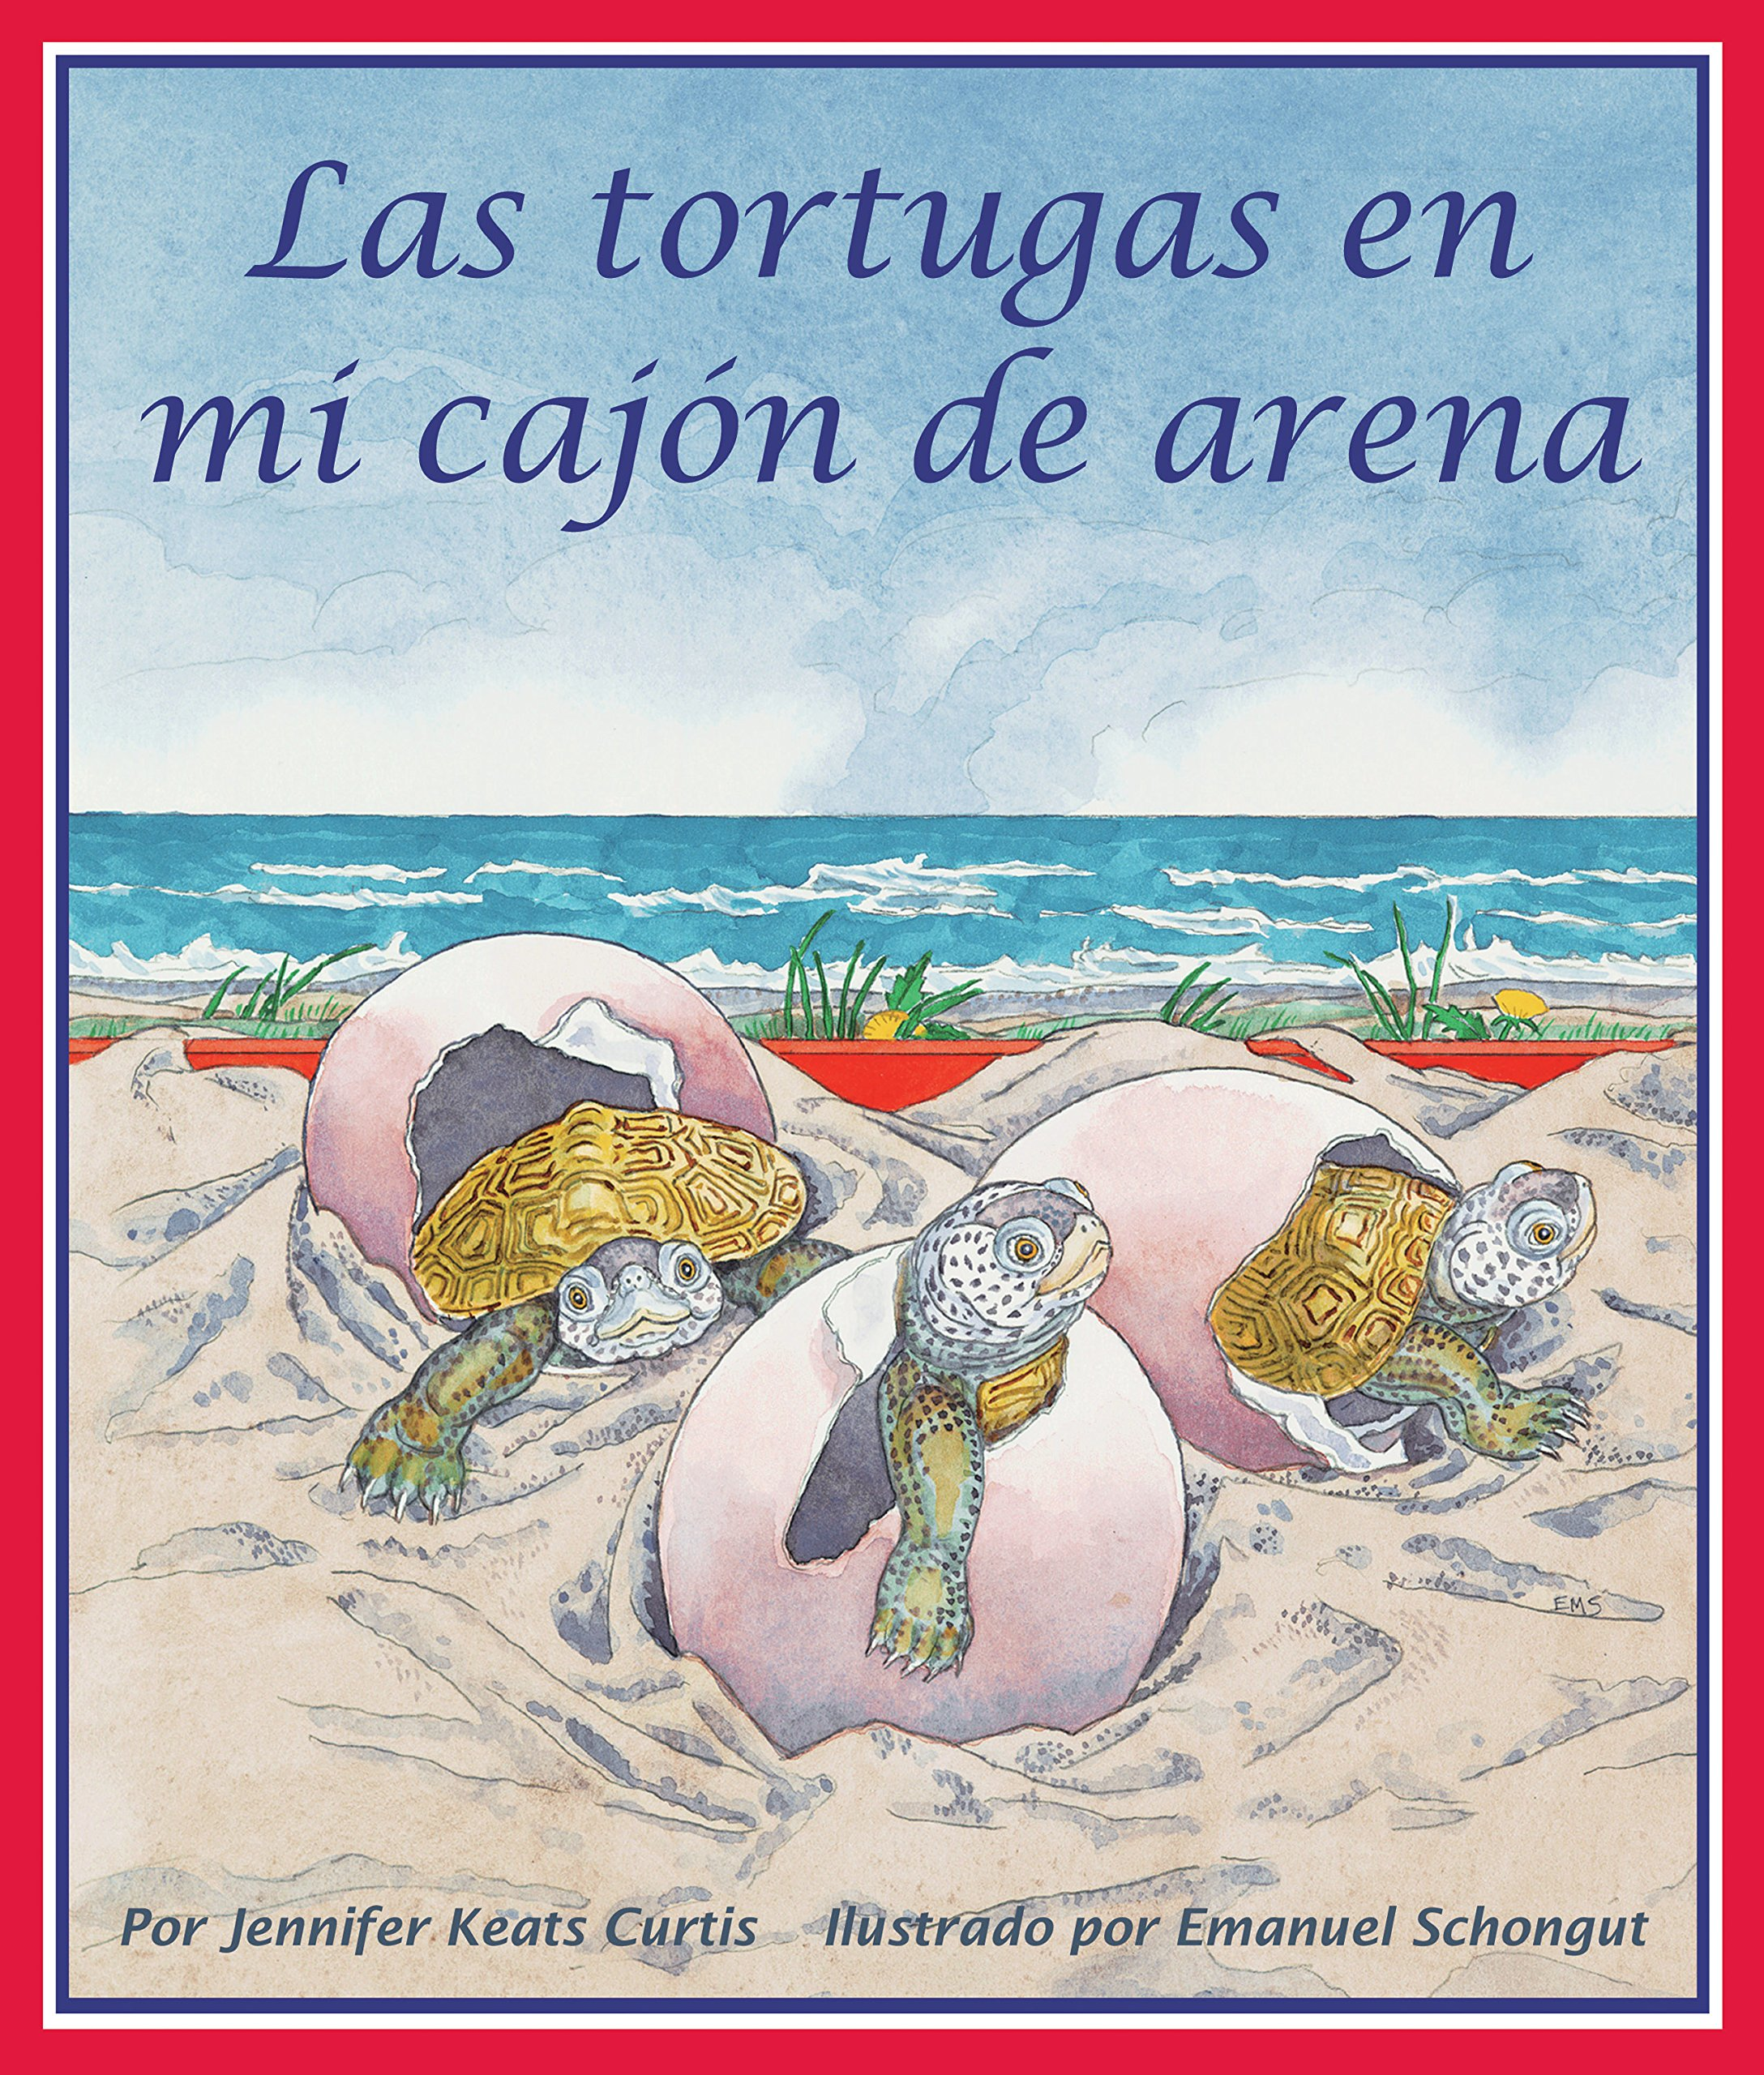 Las tortugas en mi cajón de arena [Turtles In My Sandbox] (Spanish Edition)